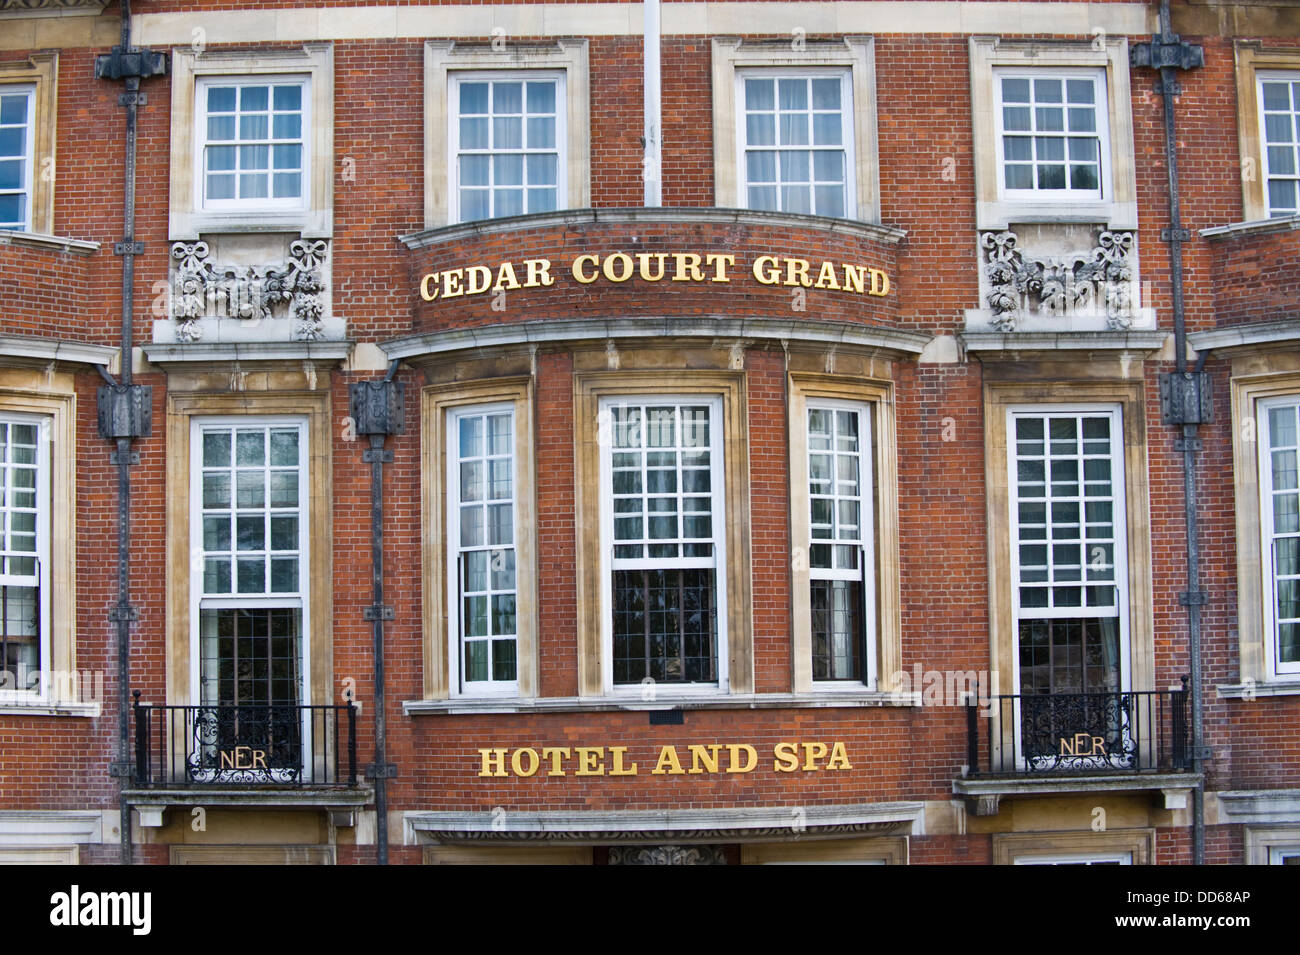 Cedar Court Grand Hotel & Spa in city of York North Yorkshire England UK Stock Photo